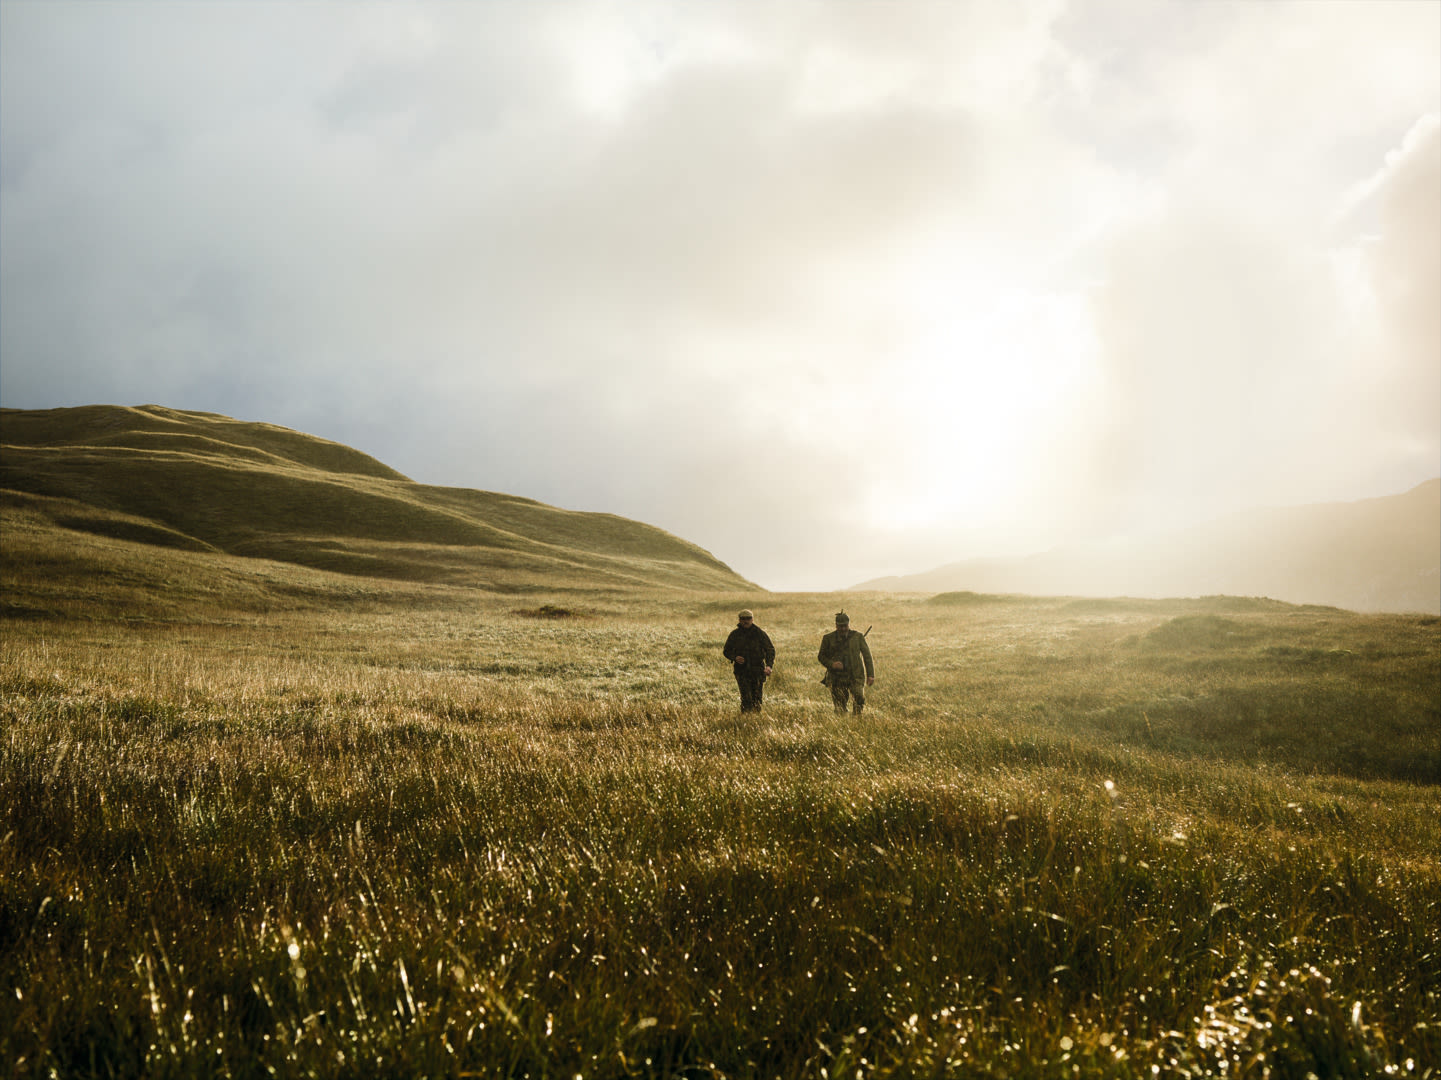 Two hunters walking on a field with a Swarovski Optik dS rifle scope